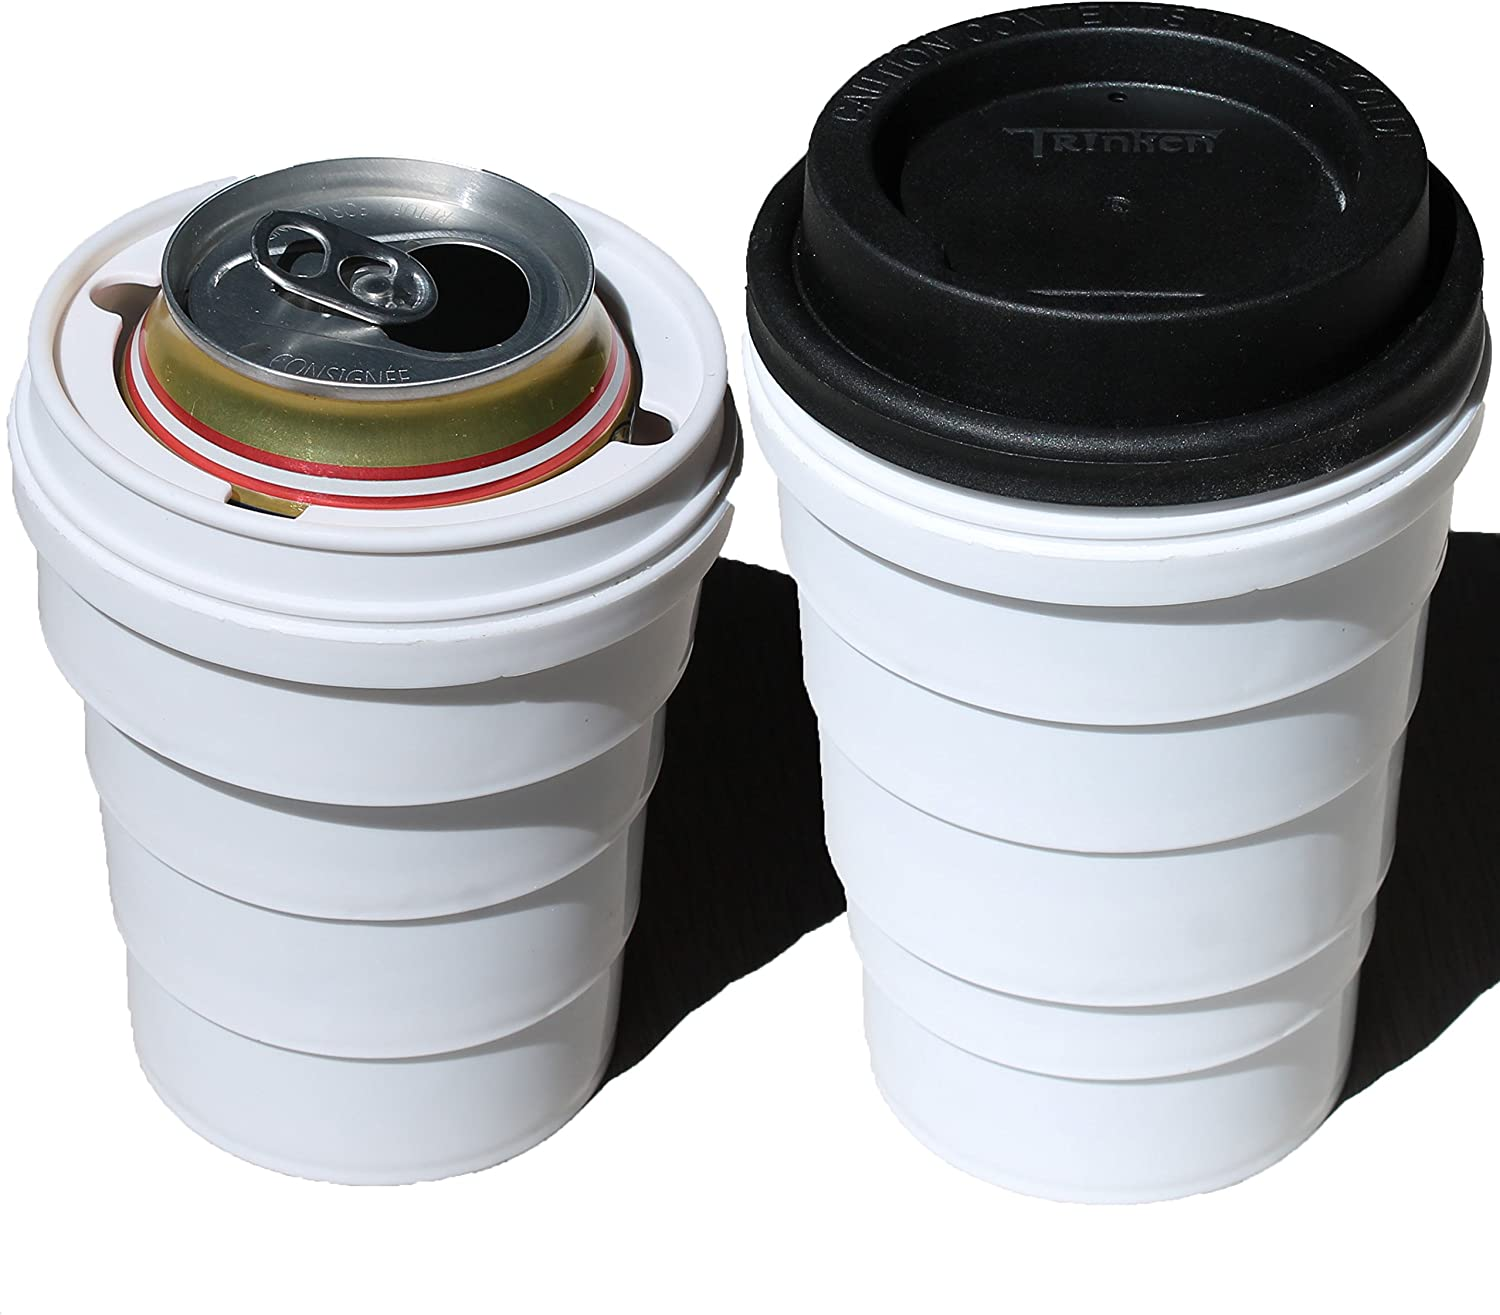 Trinken Lid and Collapsible Cup Can Cooler, Hide Your Beverage Can and Keep it Cold, Perfect for Outdoors Events, Hiding Drinks From Children, Keeping Drinks Cold, Hands Warm Nicer Drinking Experience